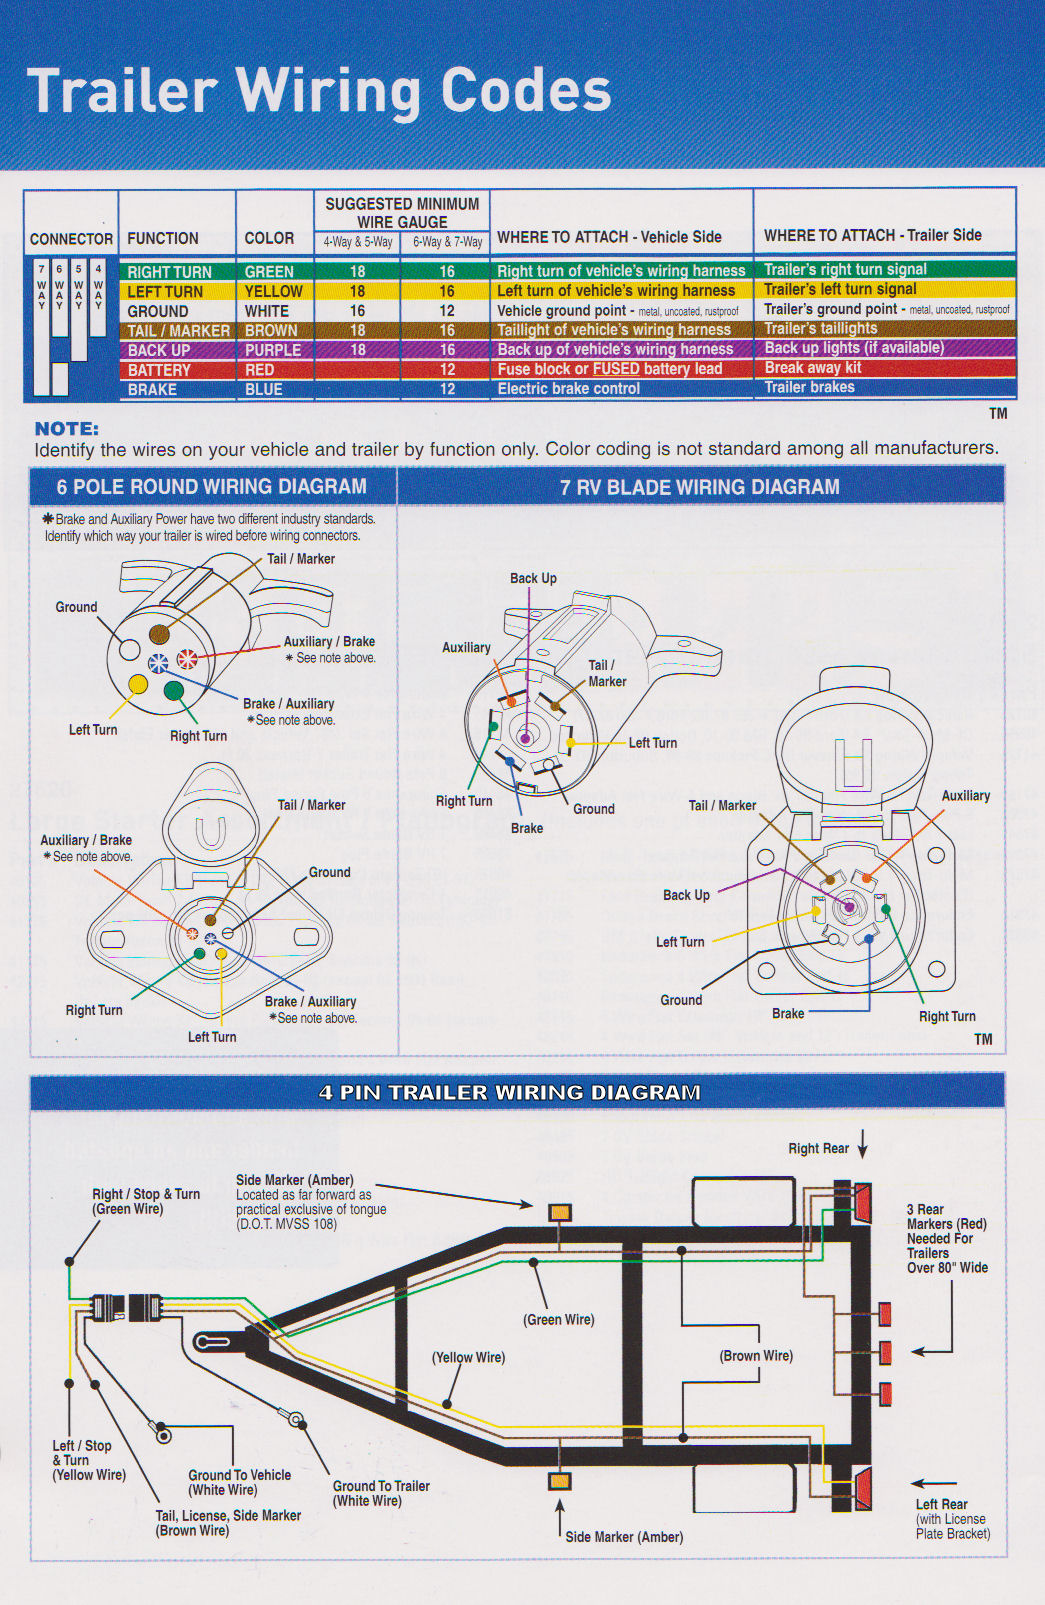 Trailer Wiring Diagram | We are The Trailer Pros!